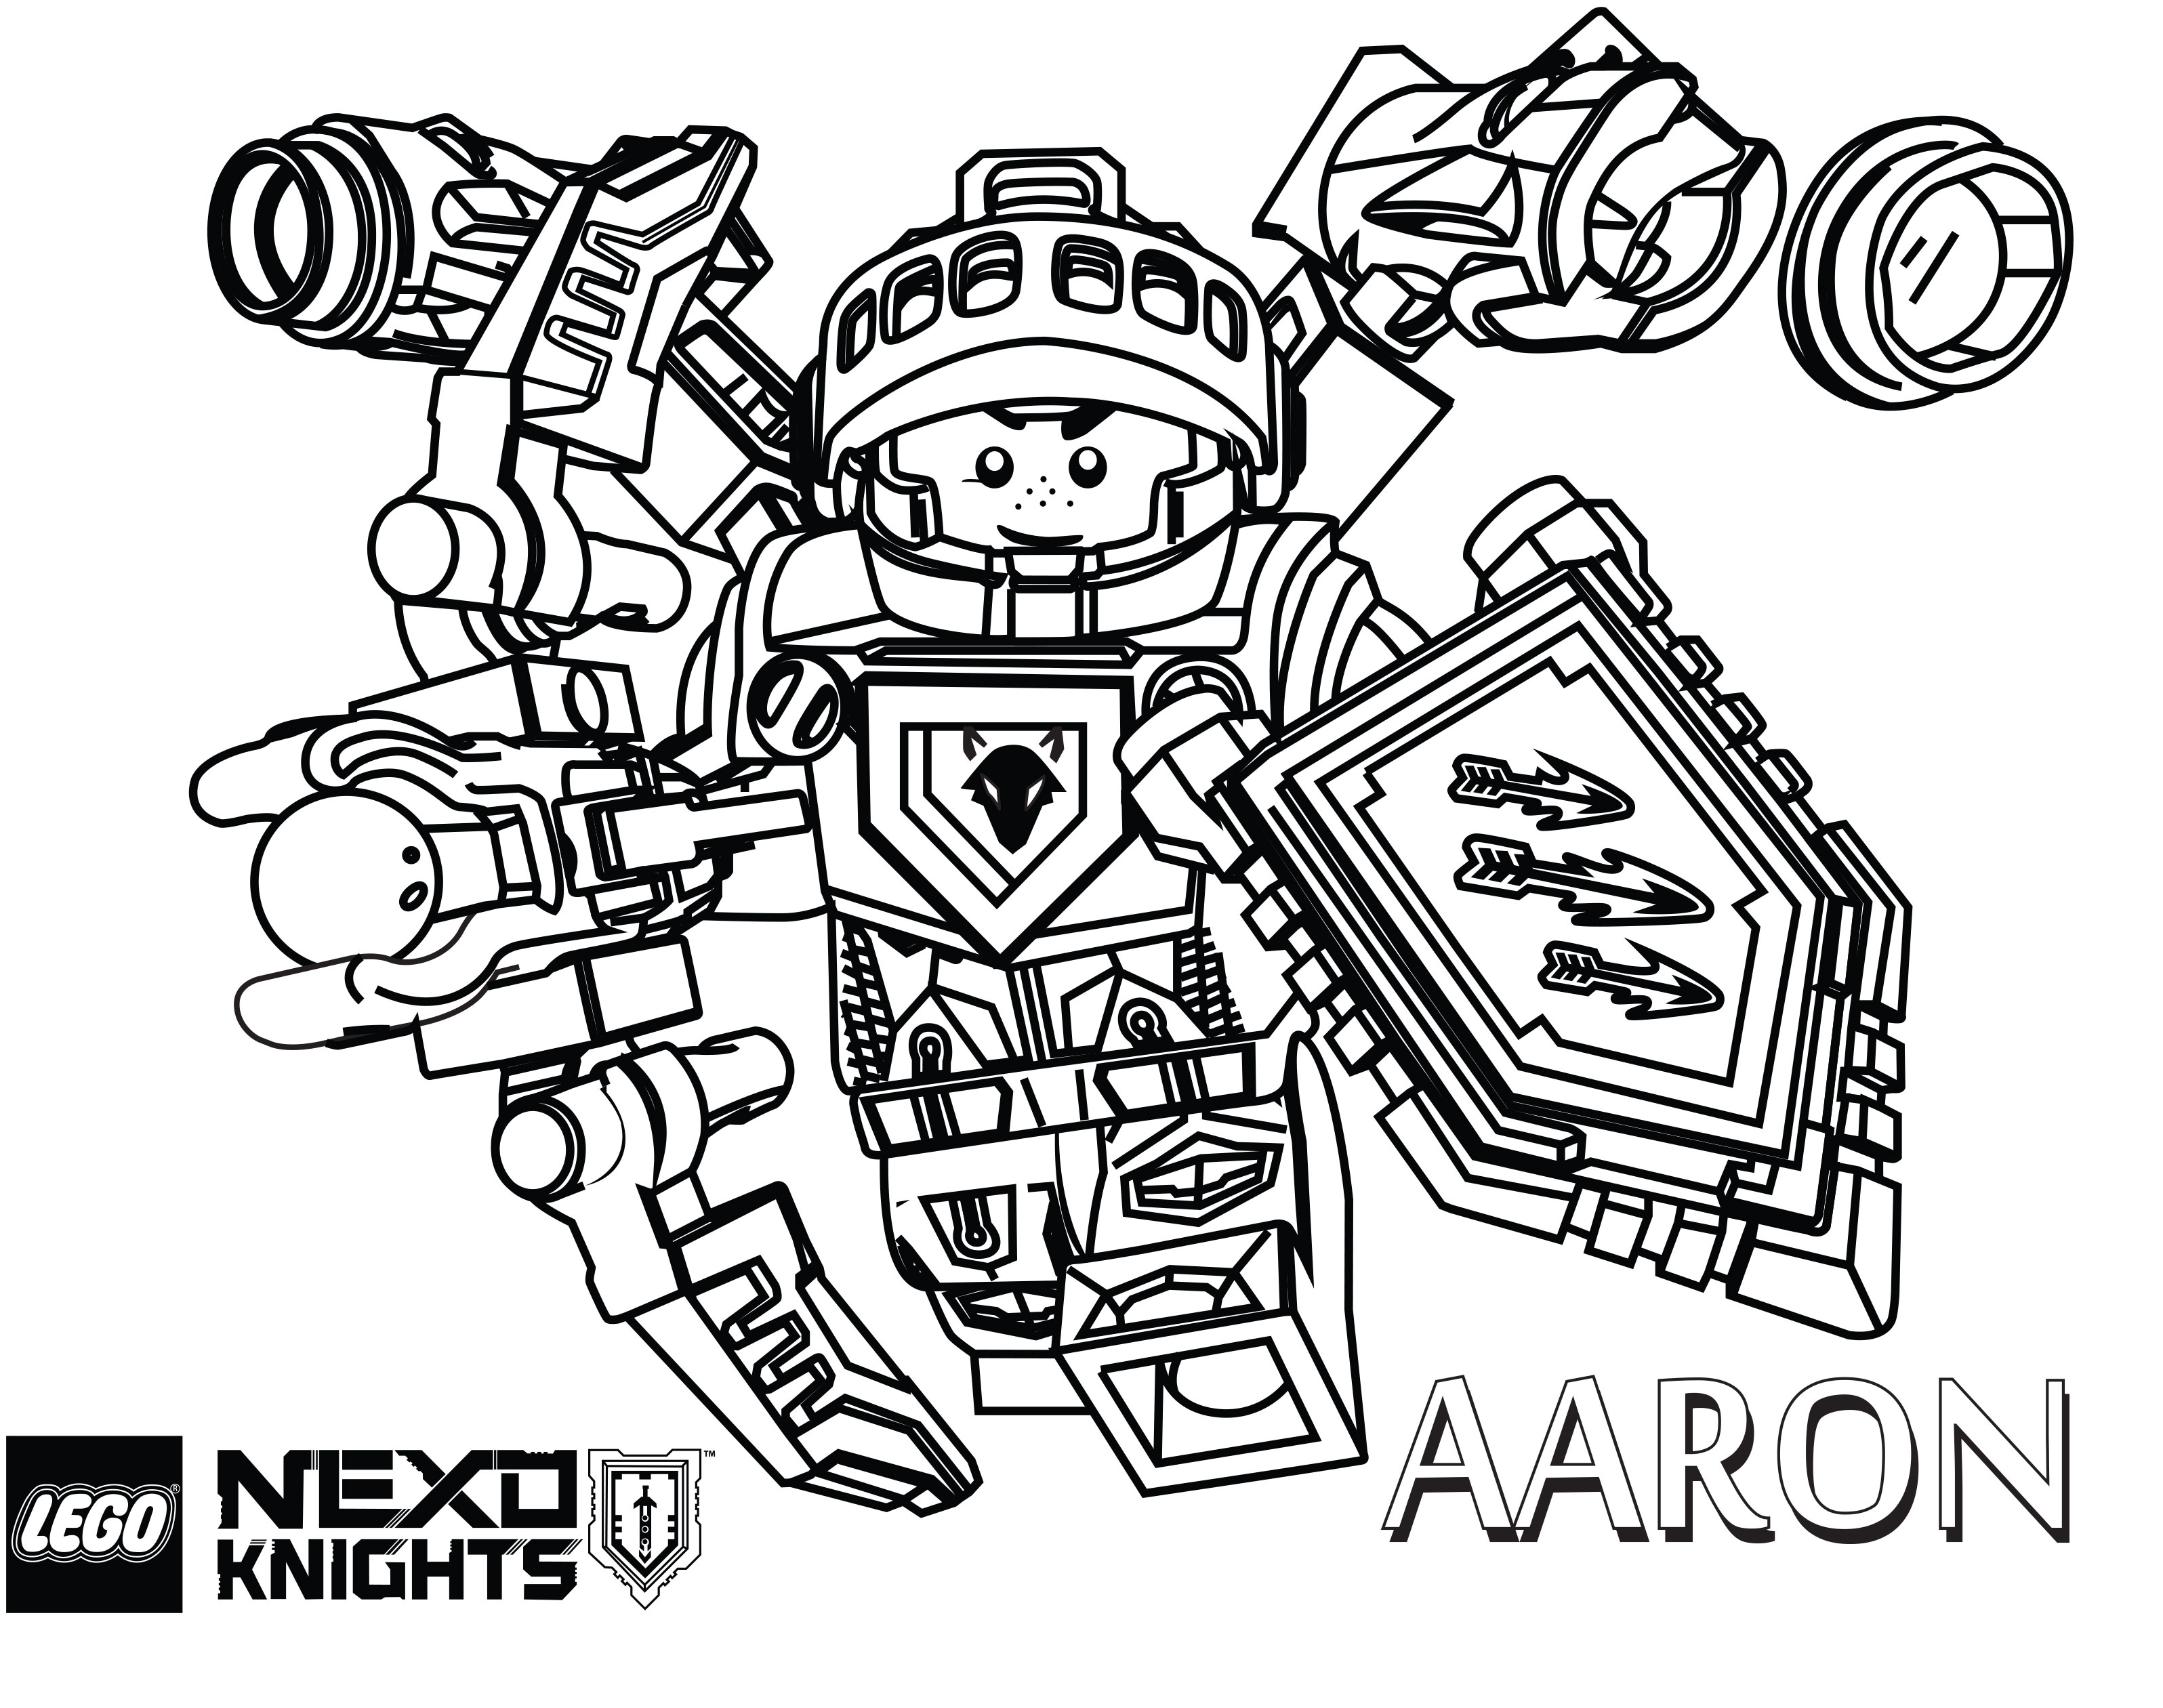 Free Coloring Pages Download Lego Nexo Knights The Brick Fan